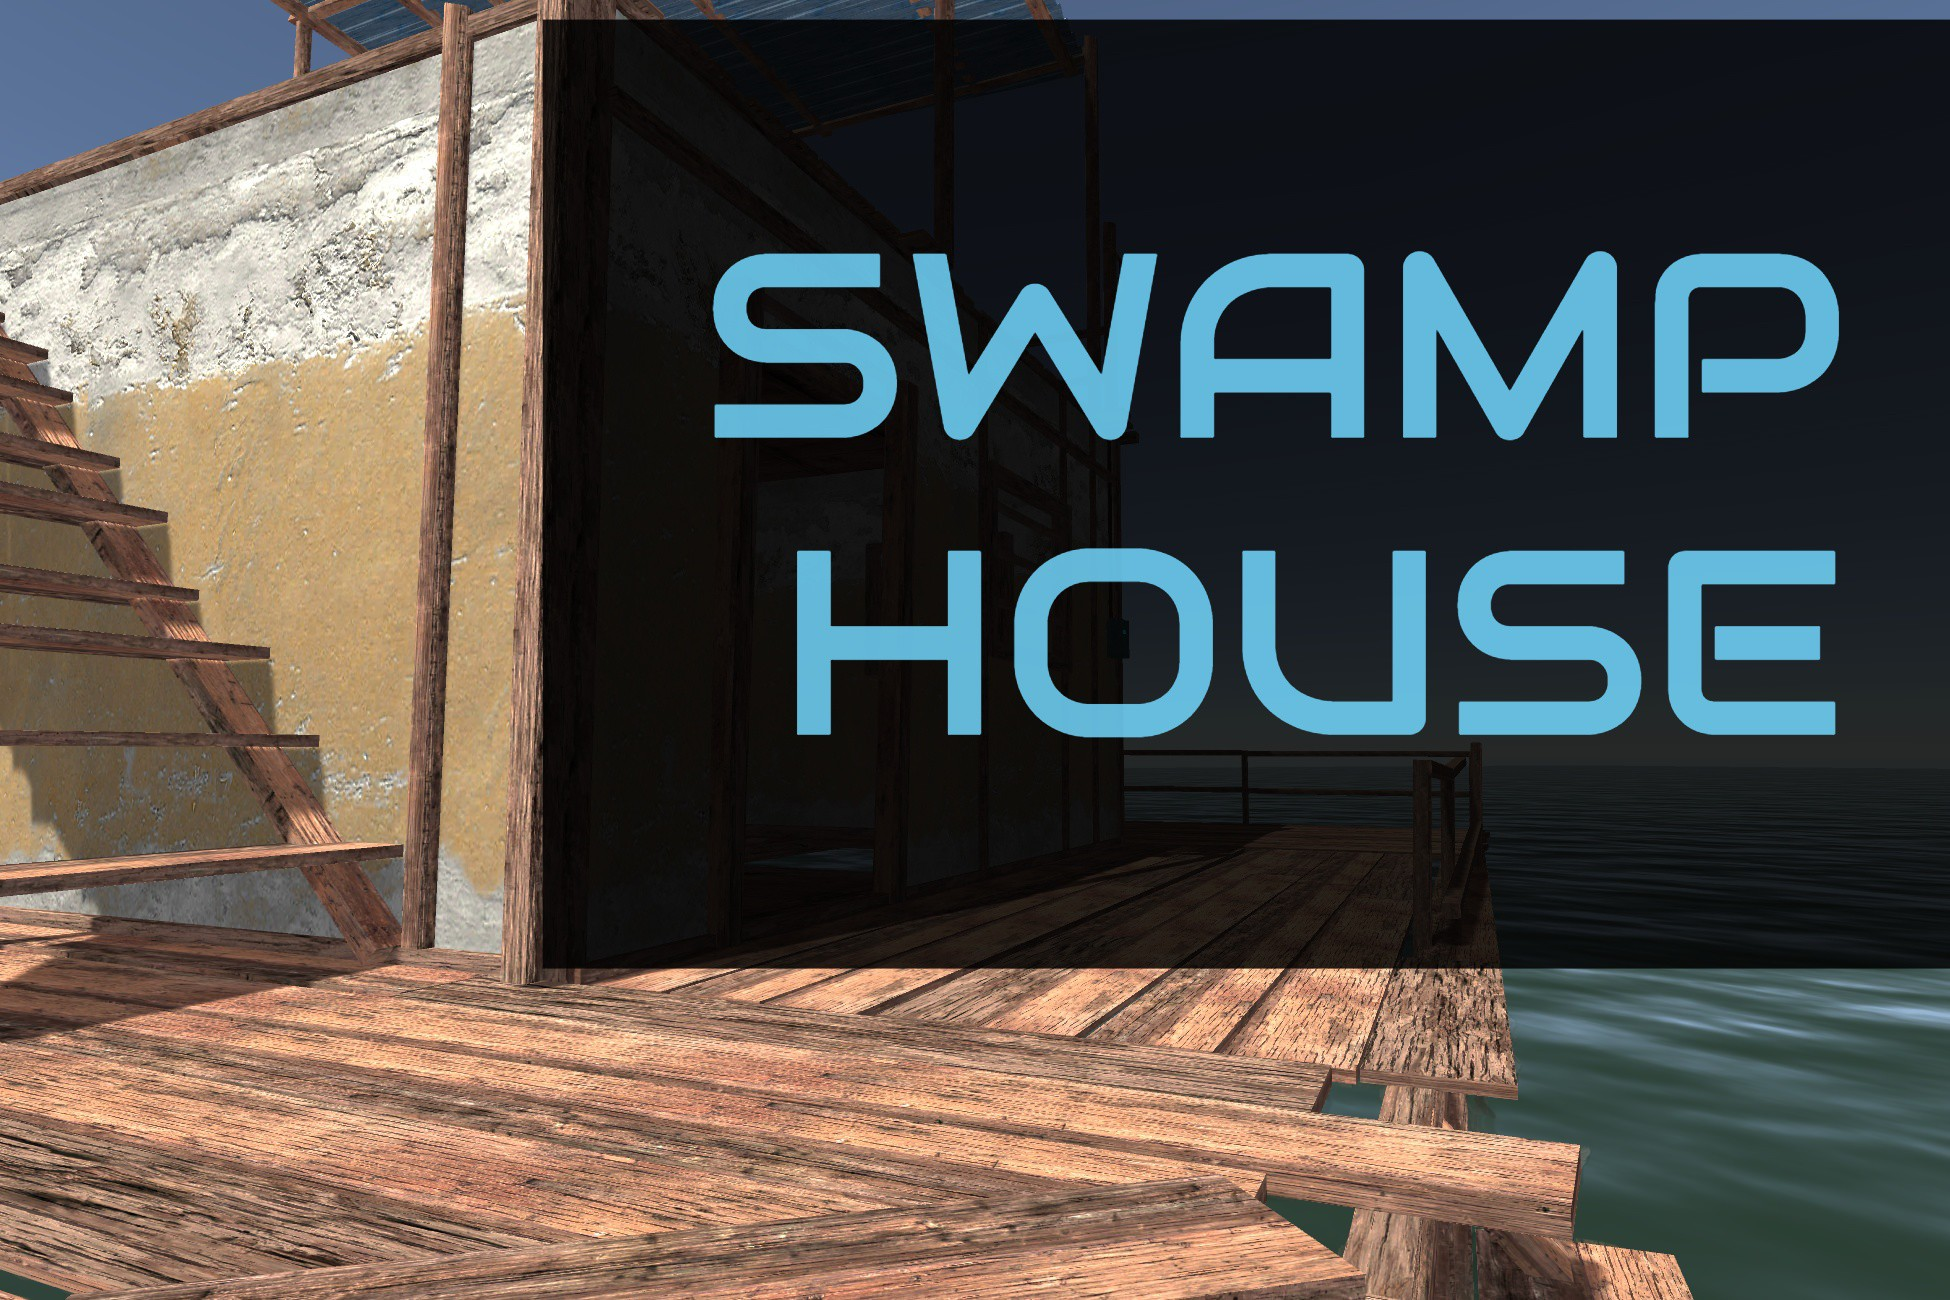 The SwampHouse Free